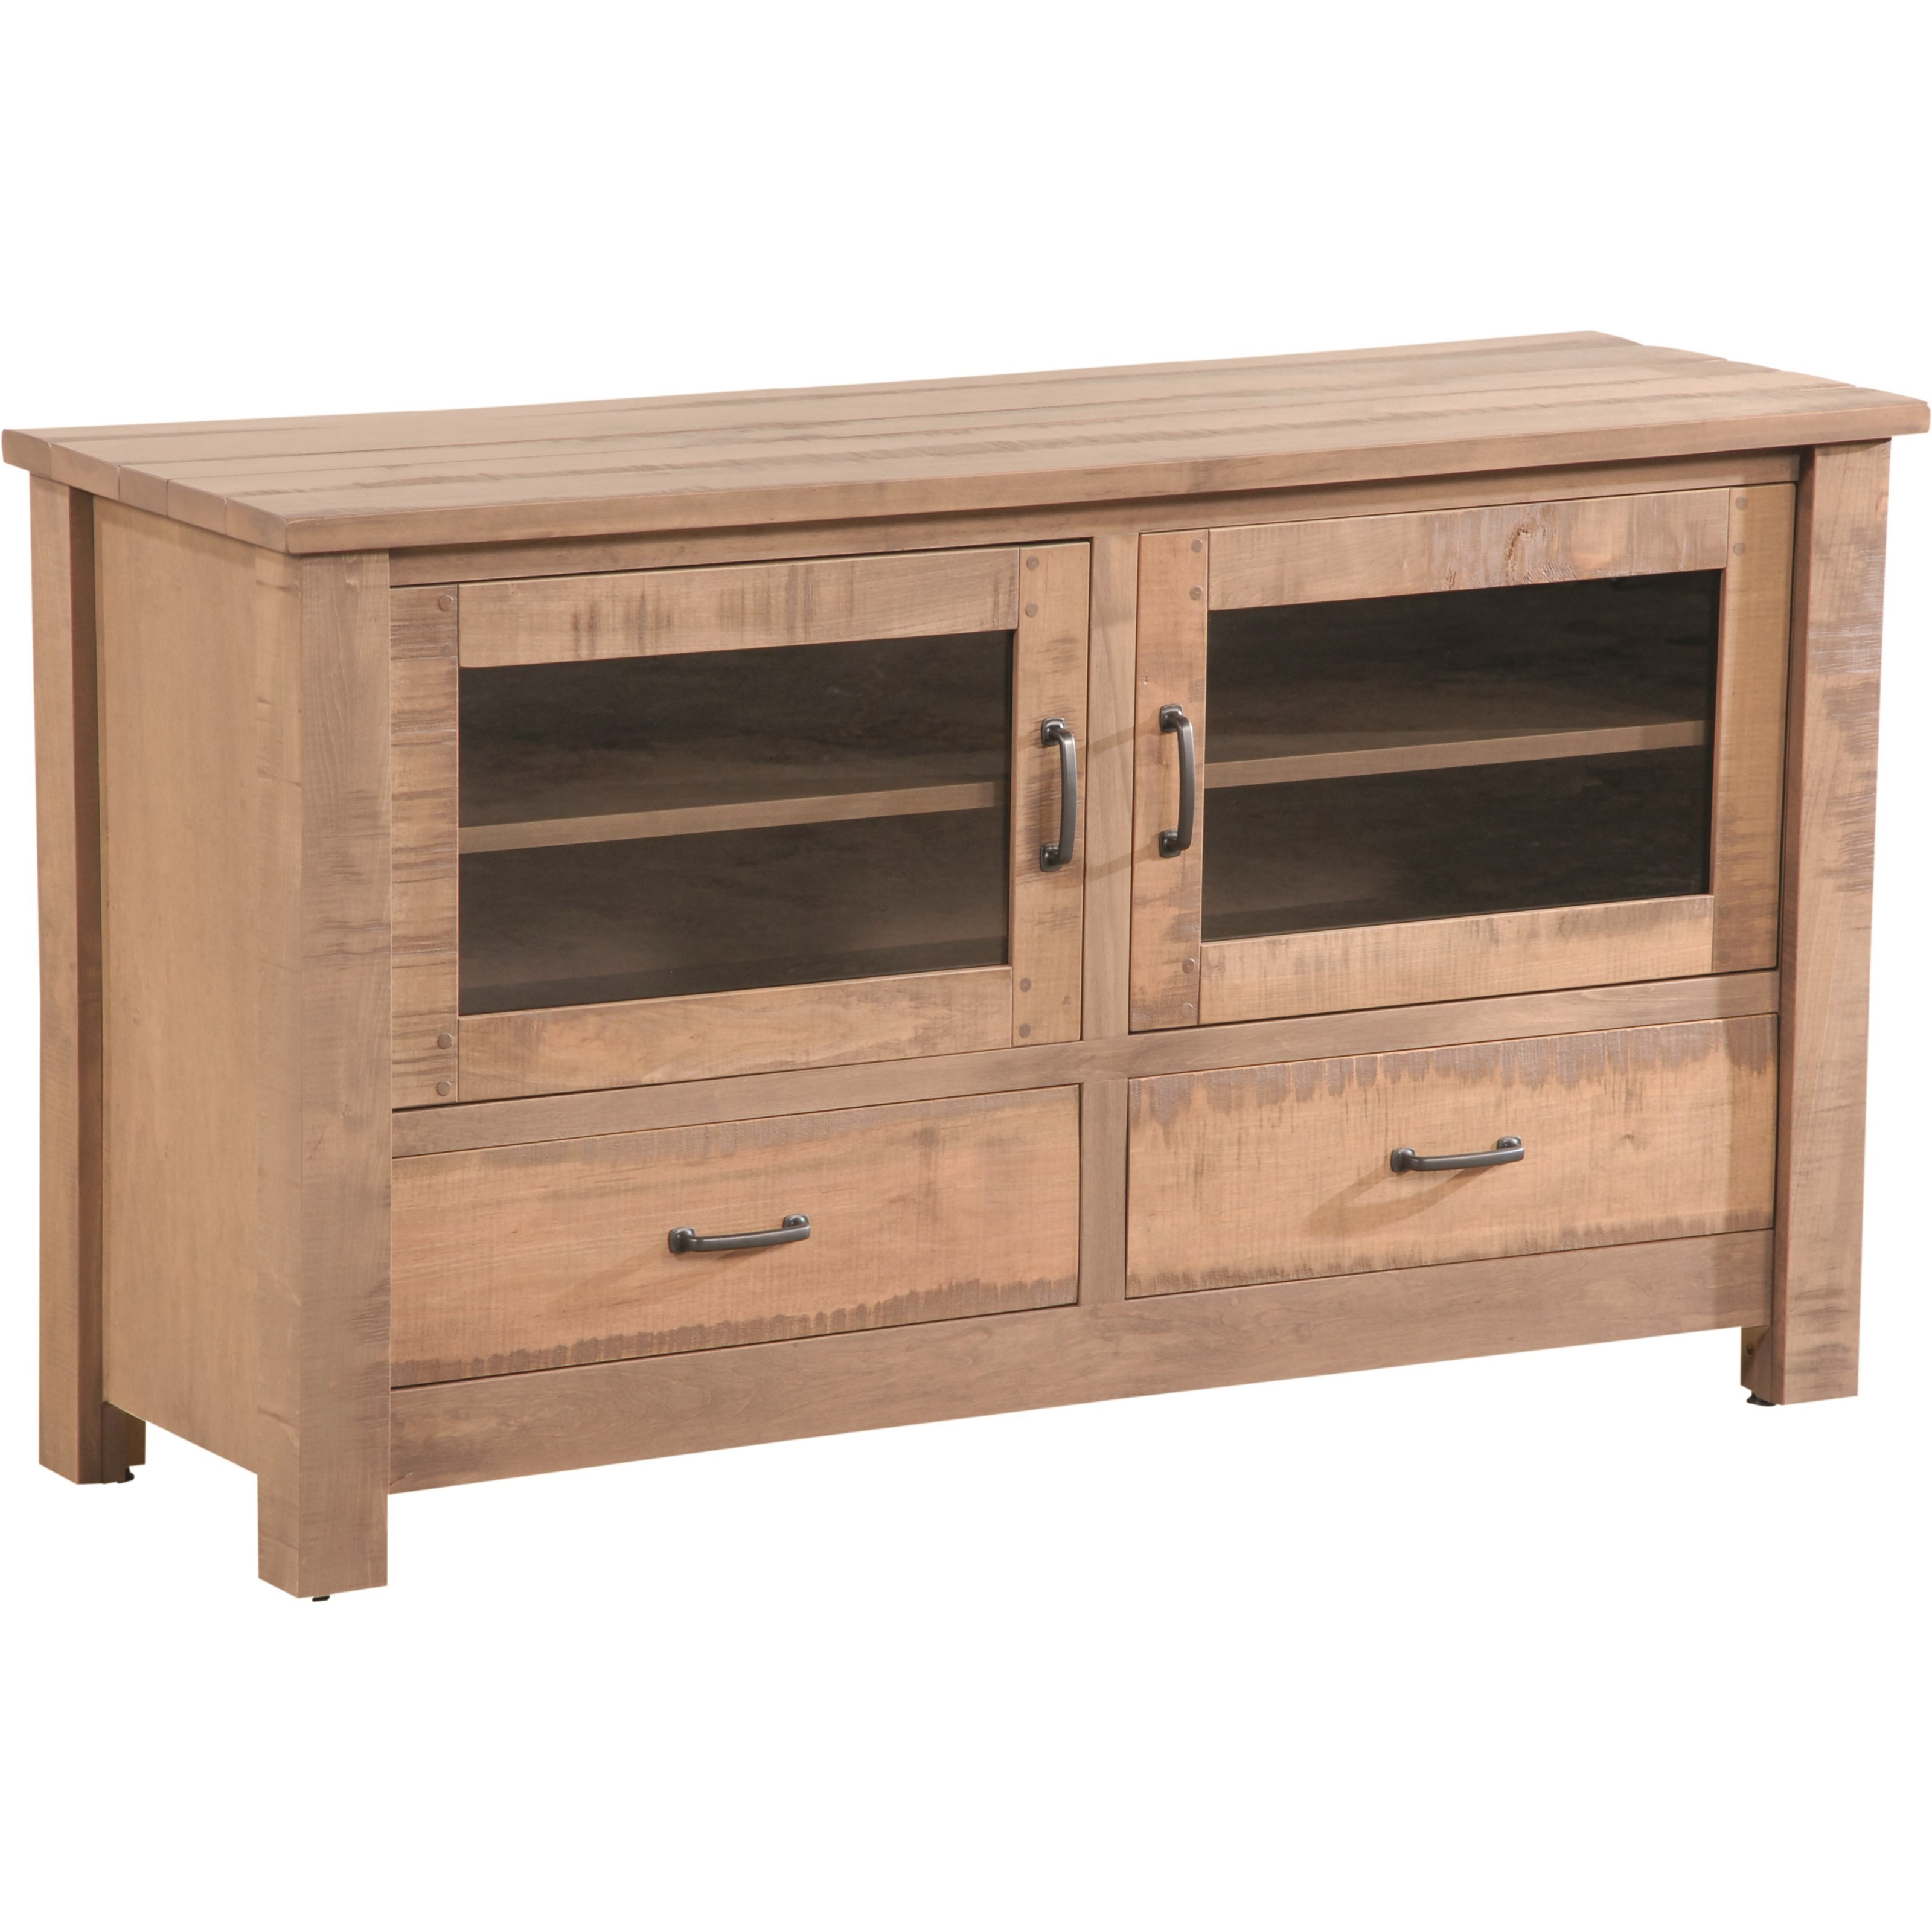 """Entertainment Terrance 54"""" TV Stand by INTEG Wood Products at Saugerties Furniture Mart"""